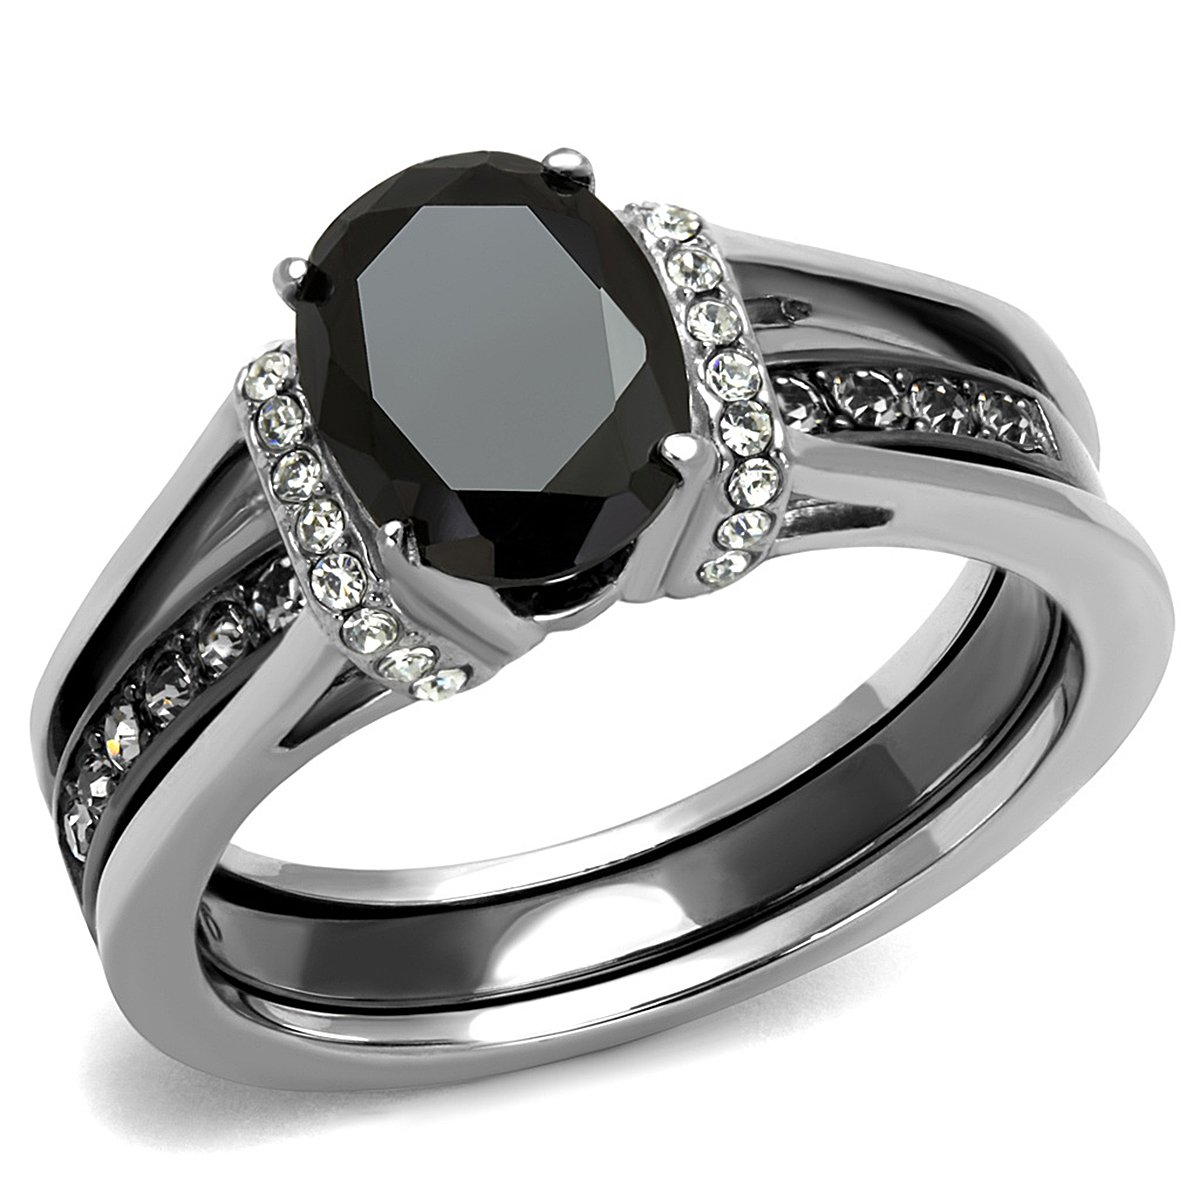 Women's 3-Piece Two-Tone Engagement & Wedding Rings Set (7)